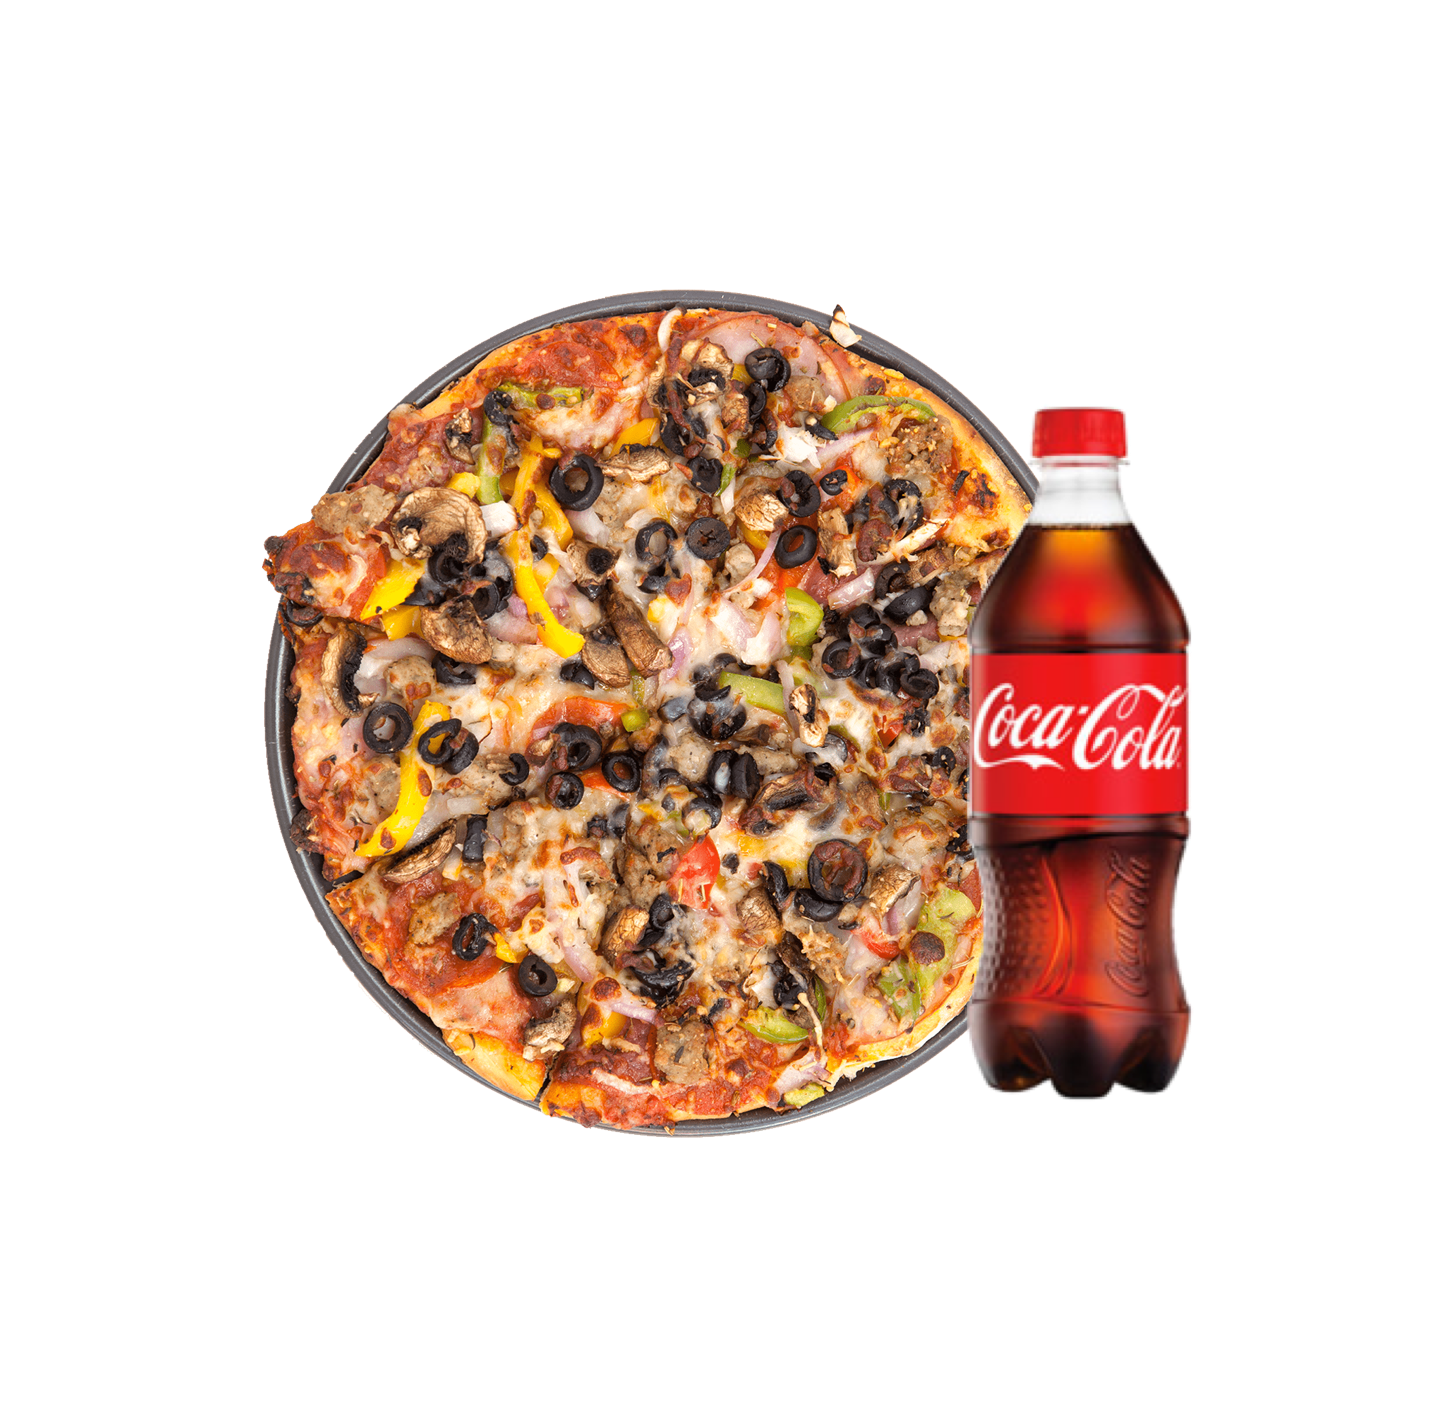 pizza and cold drink images png